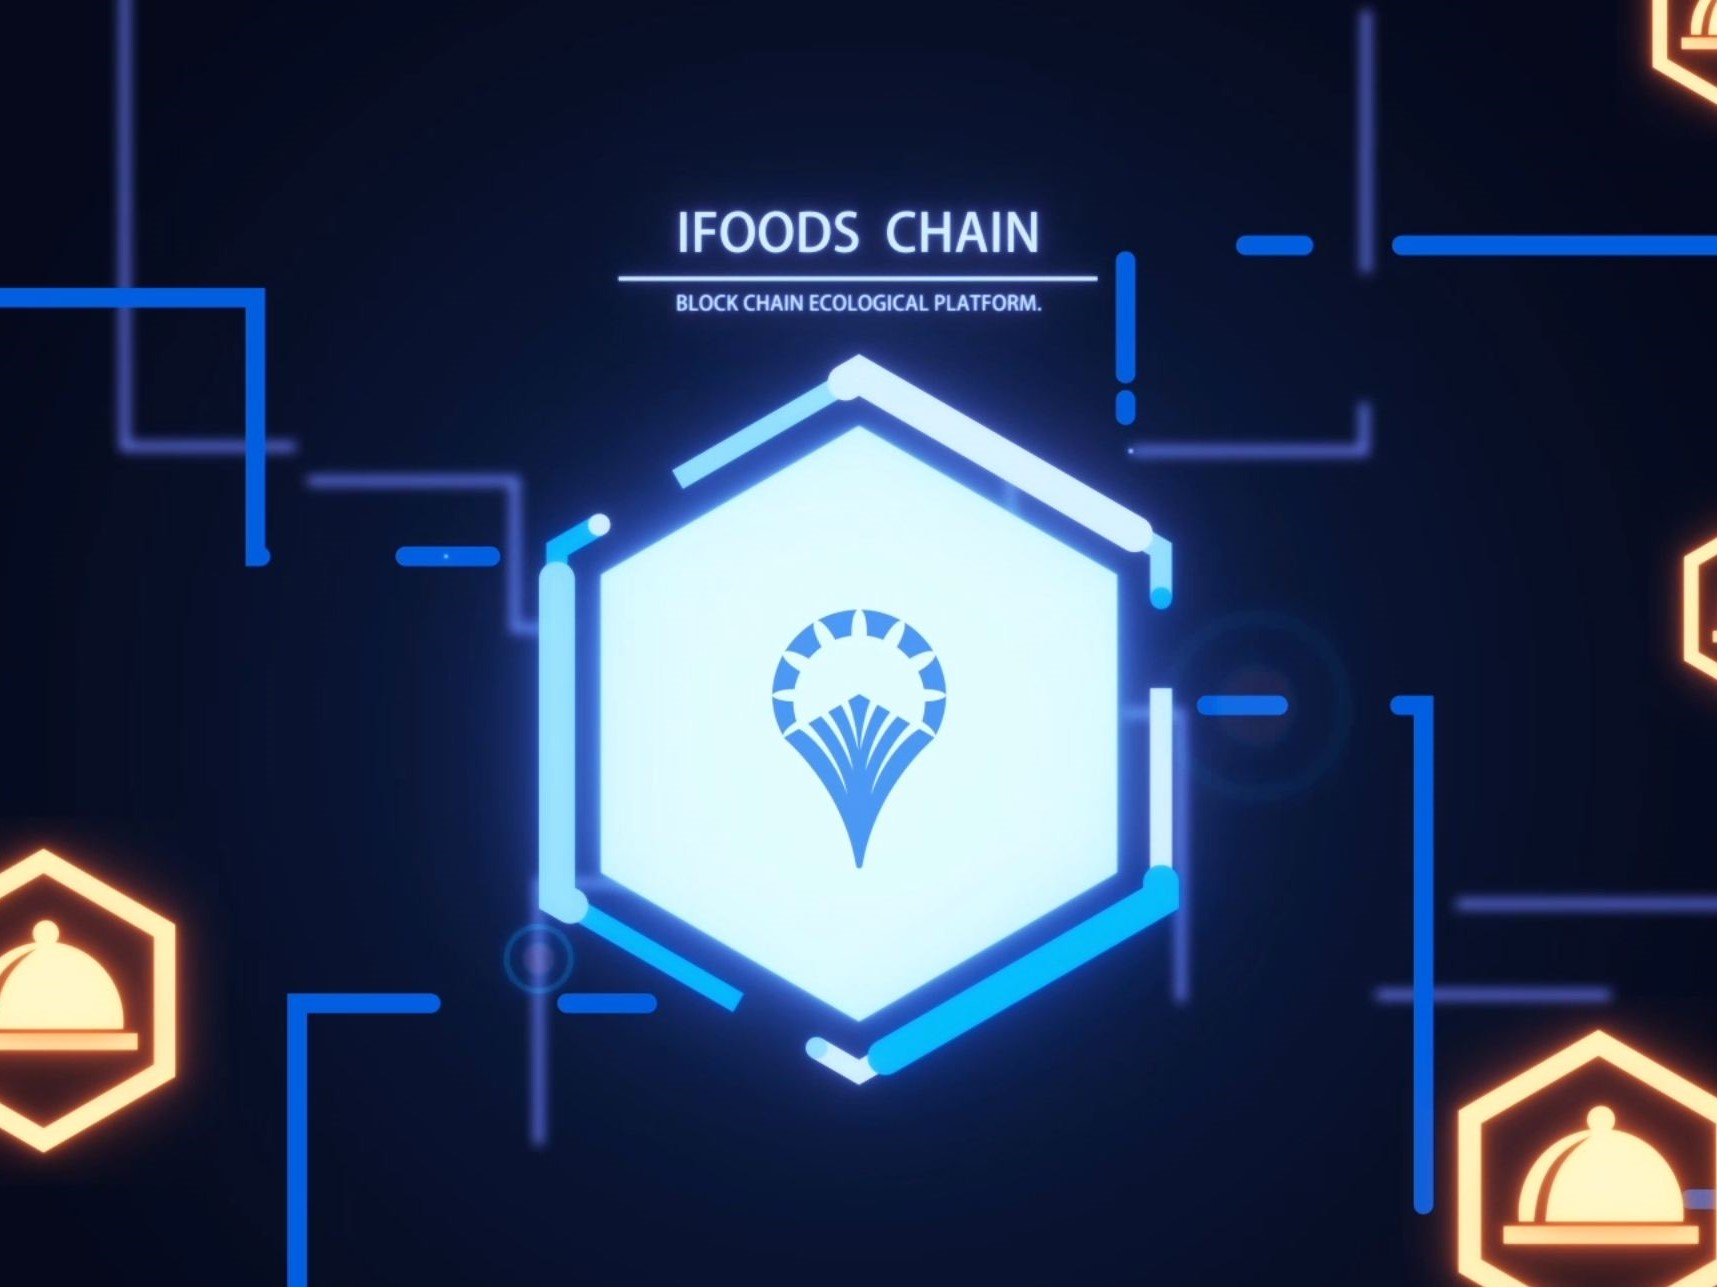 Meeting Ifoods chain - the blockchain and food combination company